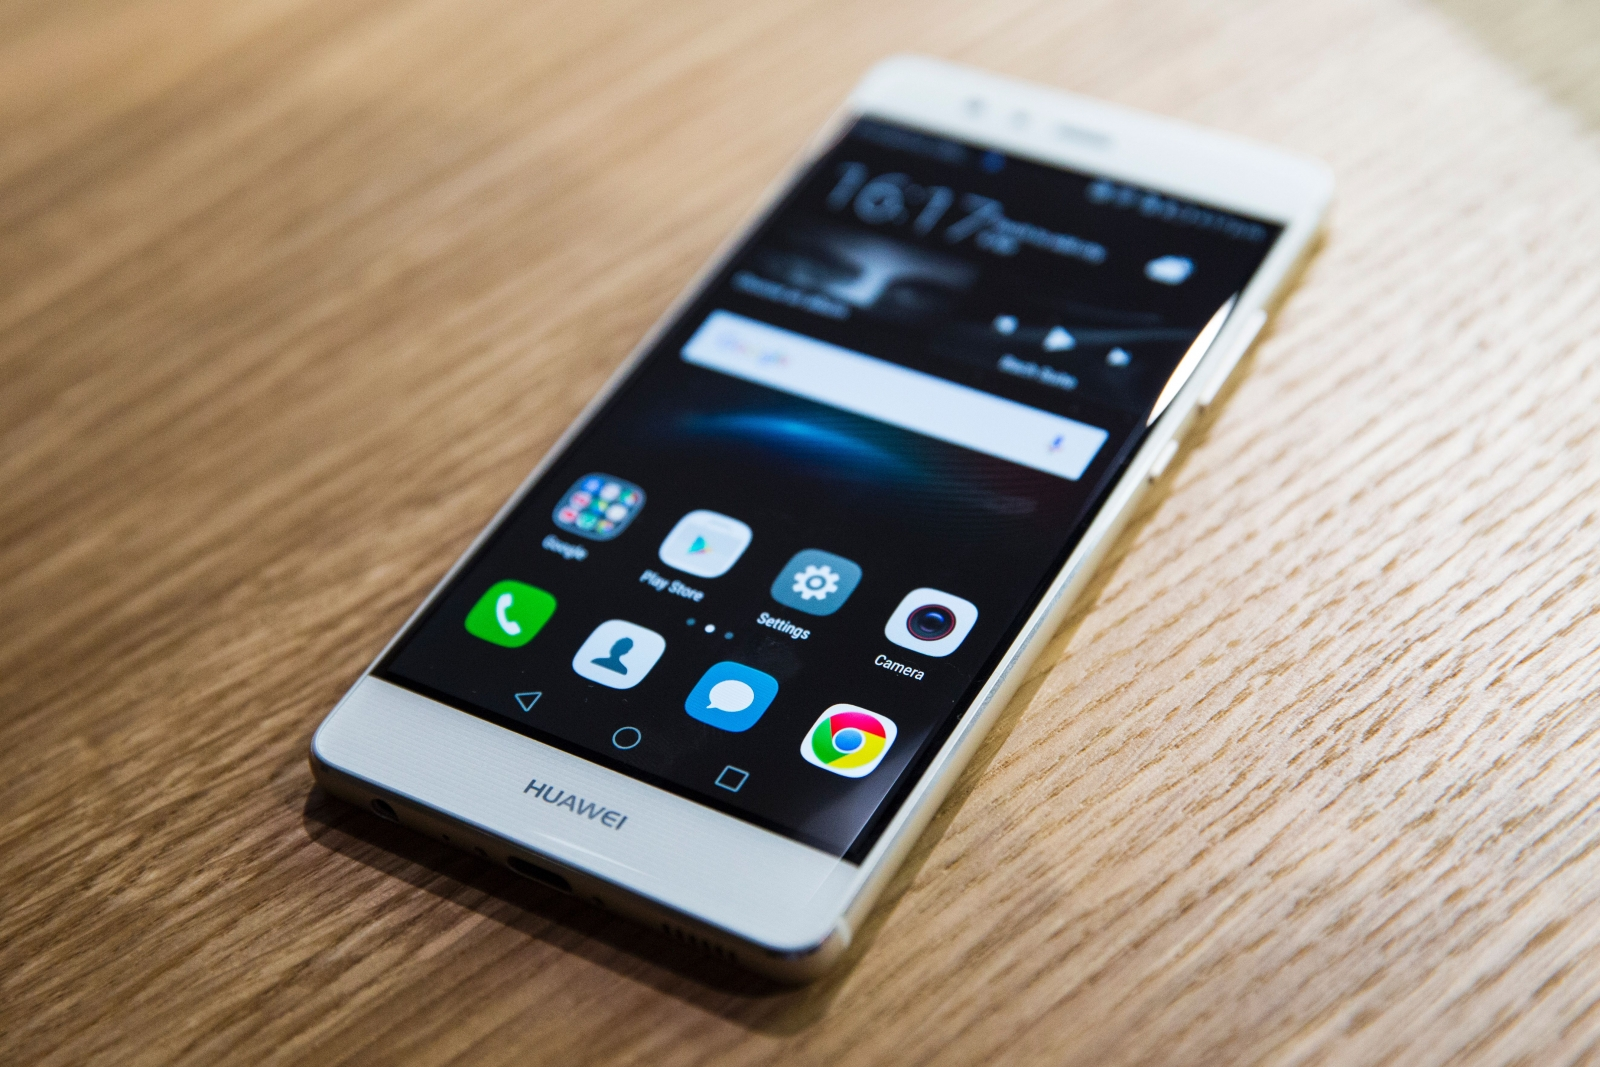 Huawei P10 and P10 Plus specs leaked